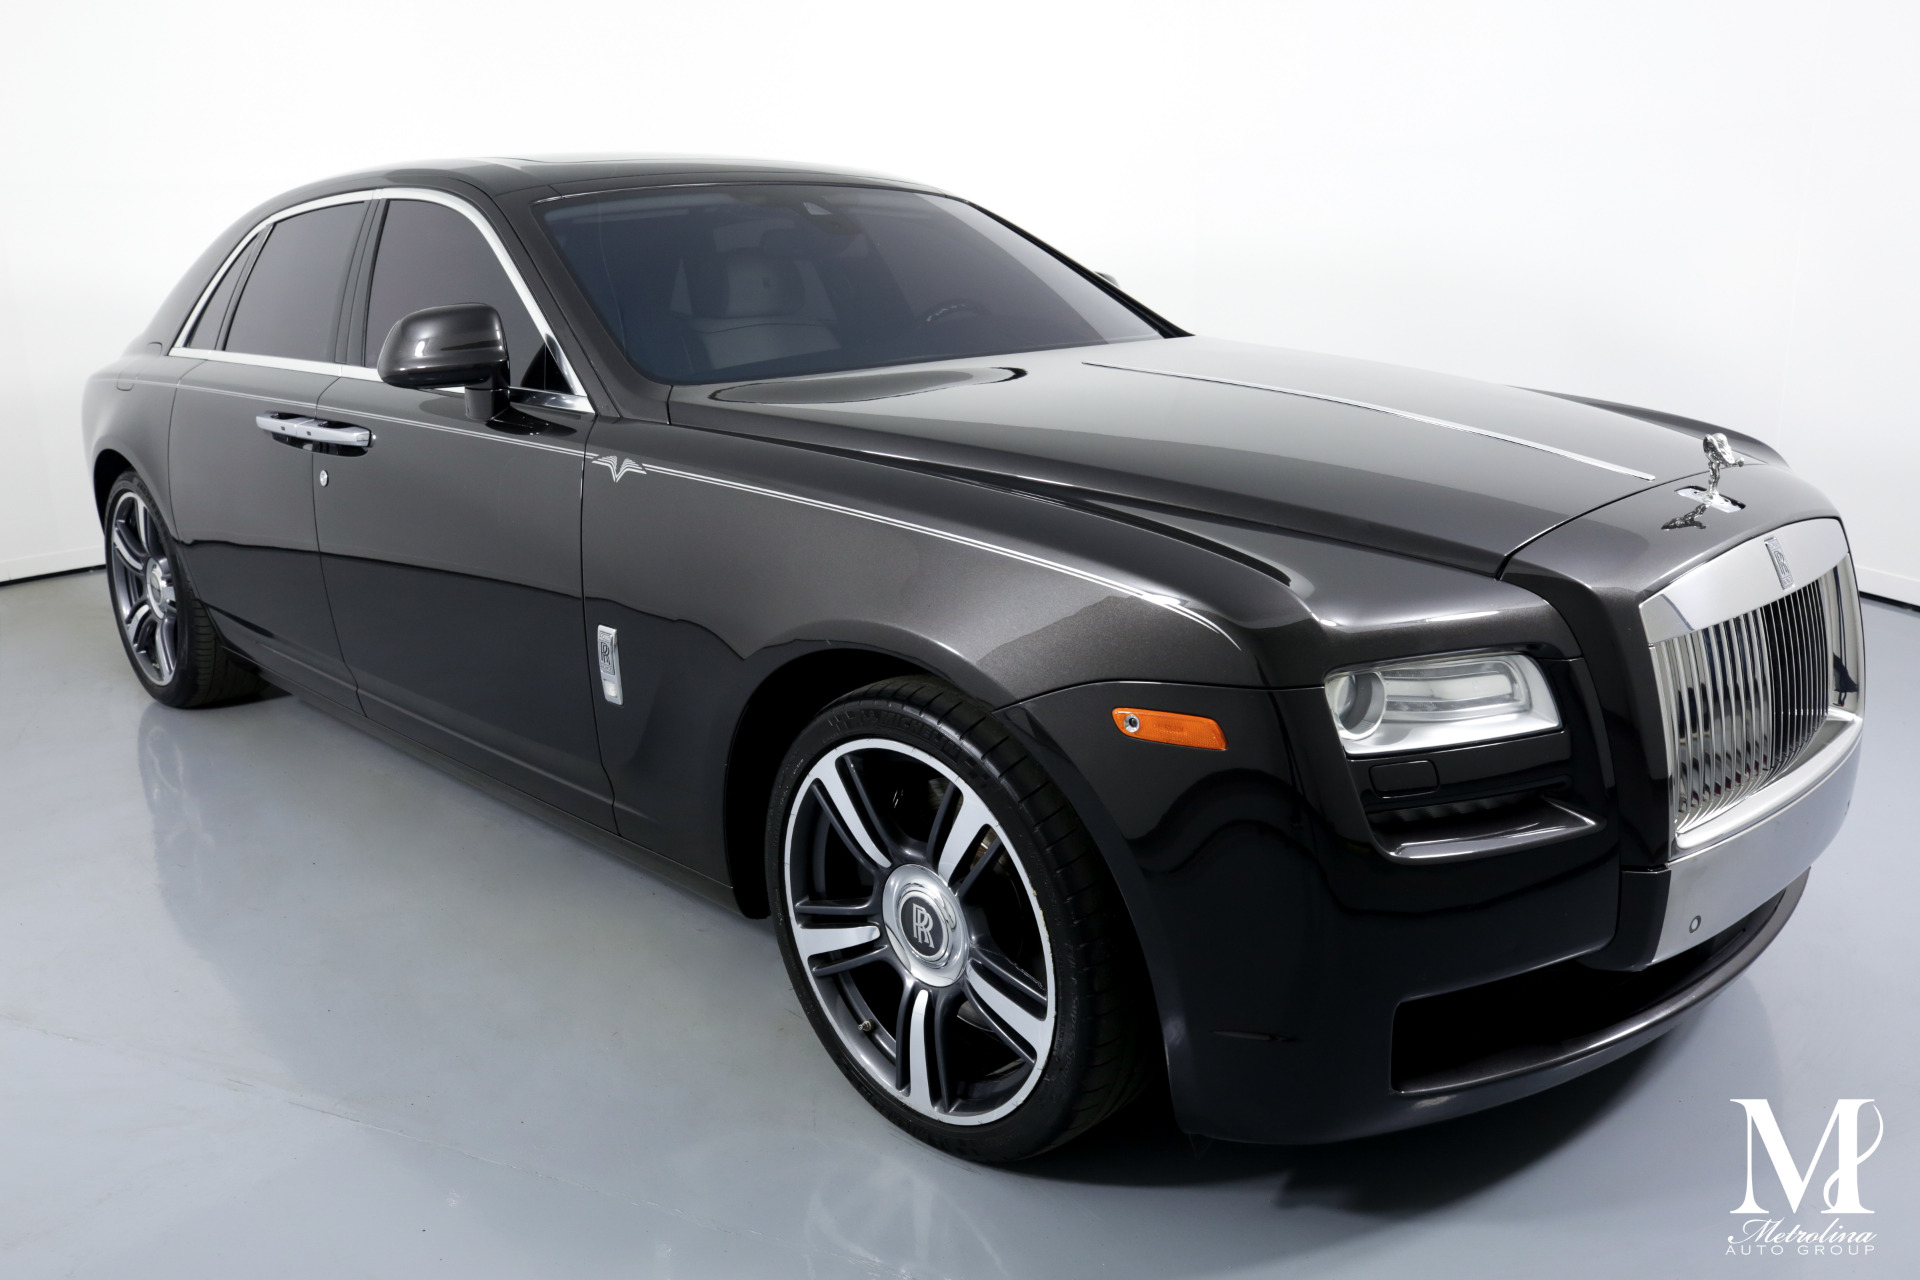 Used 2014 Rolls-Royce Ghost for sale $114,996 at Metrolina Auto Group in Charlotte NC 28217 - 2